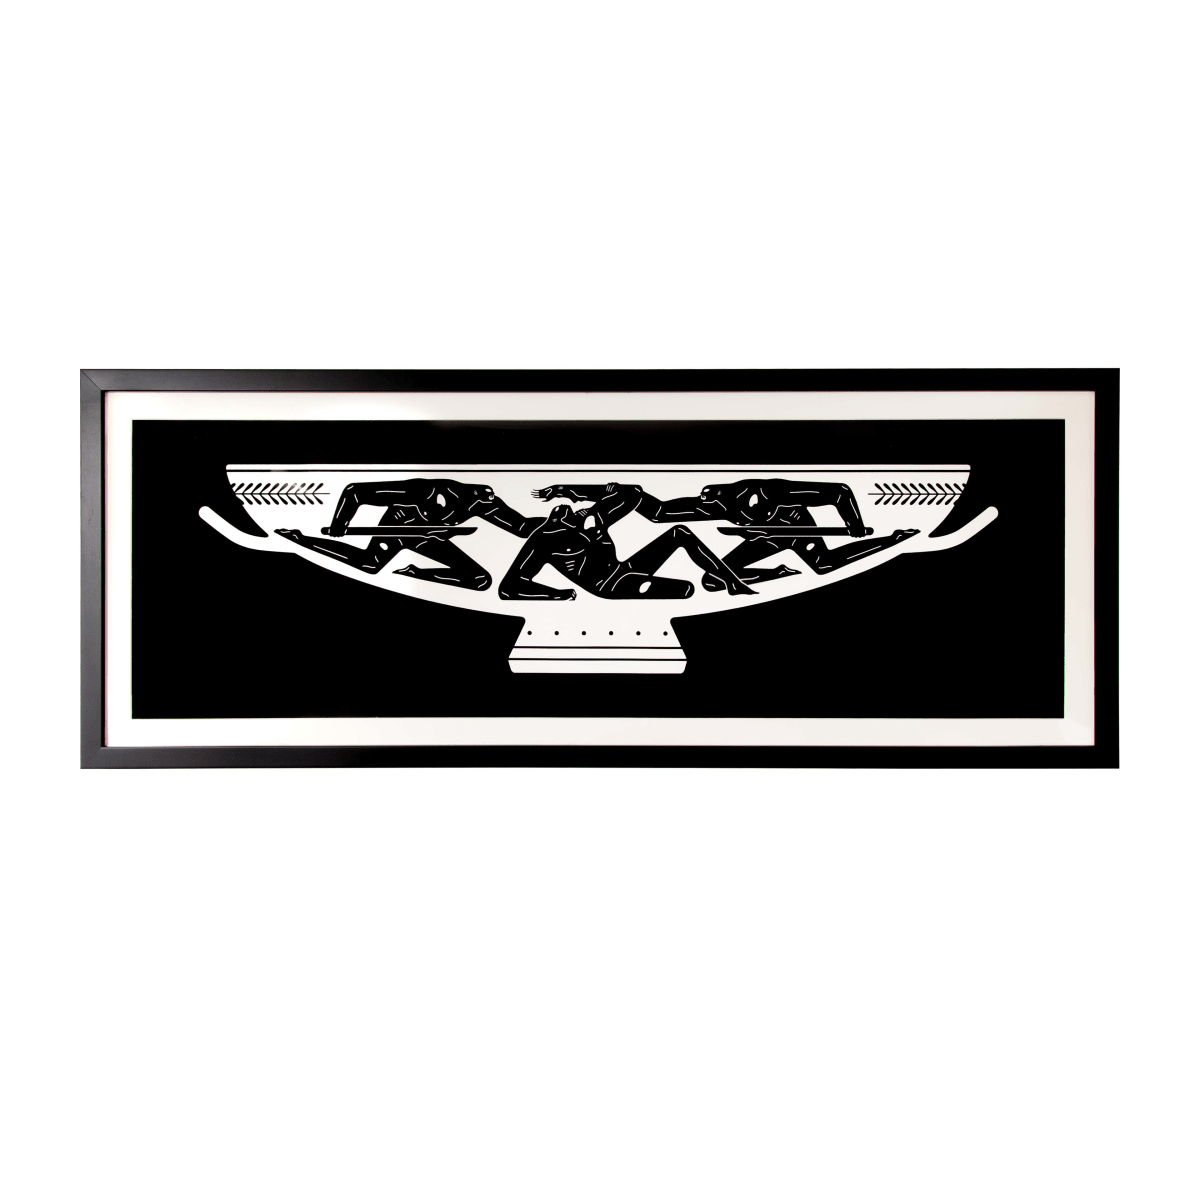 Cleon Peterson Kylix, 2018 Screenprint on 290gsm Coventry rag paper with deckled edges 86 x 28 cm Edition of 150